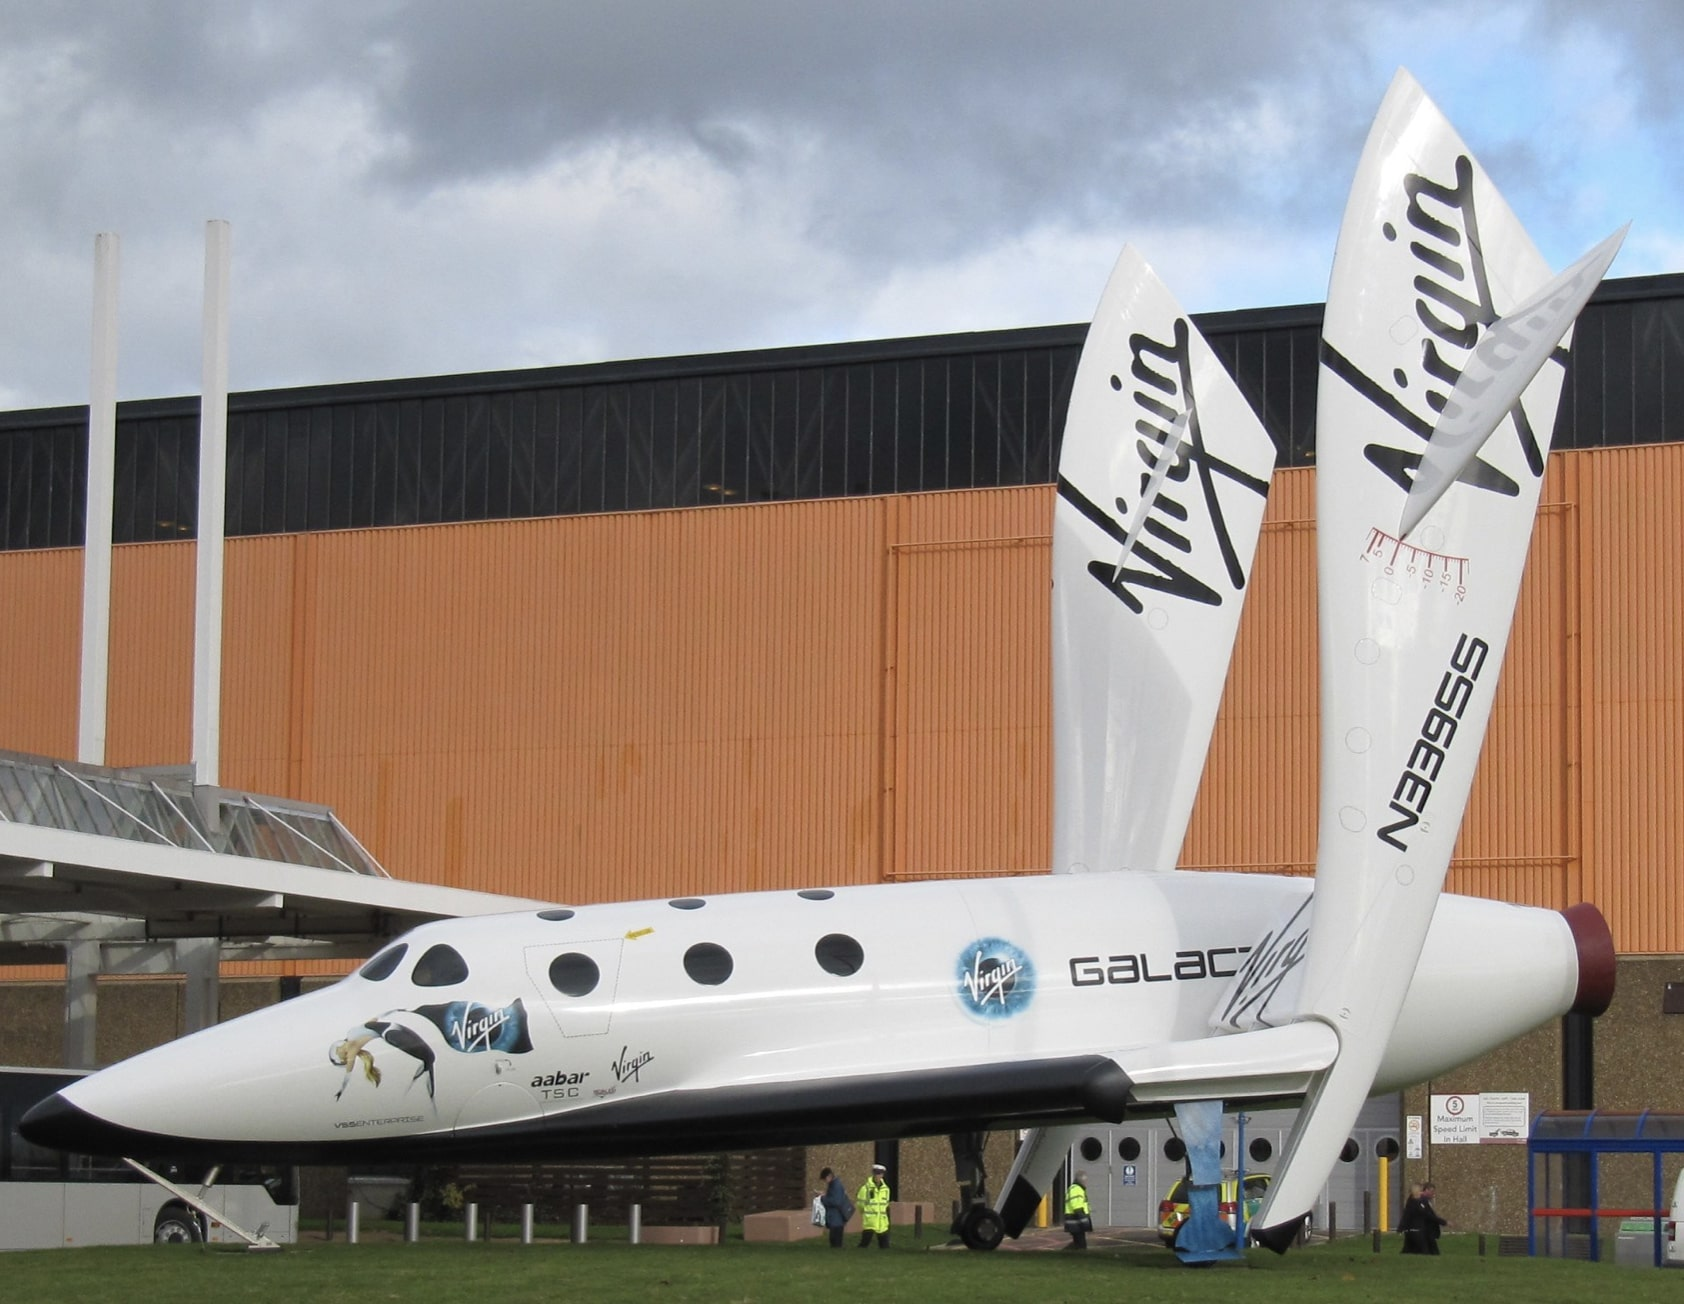 The chief of operations of Virgin Galactic will be heading the Australian Space Agency